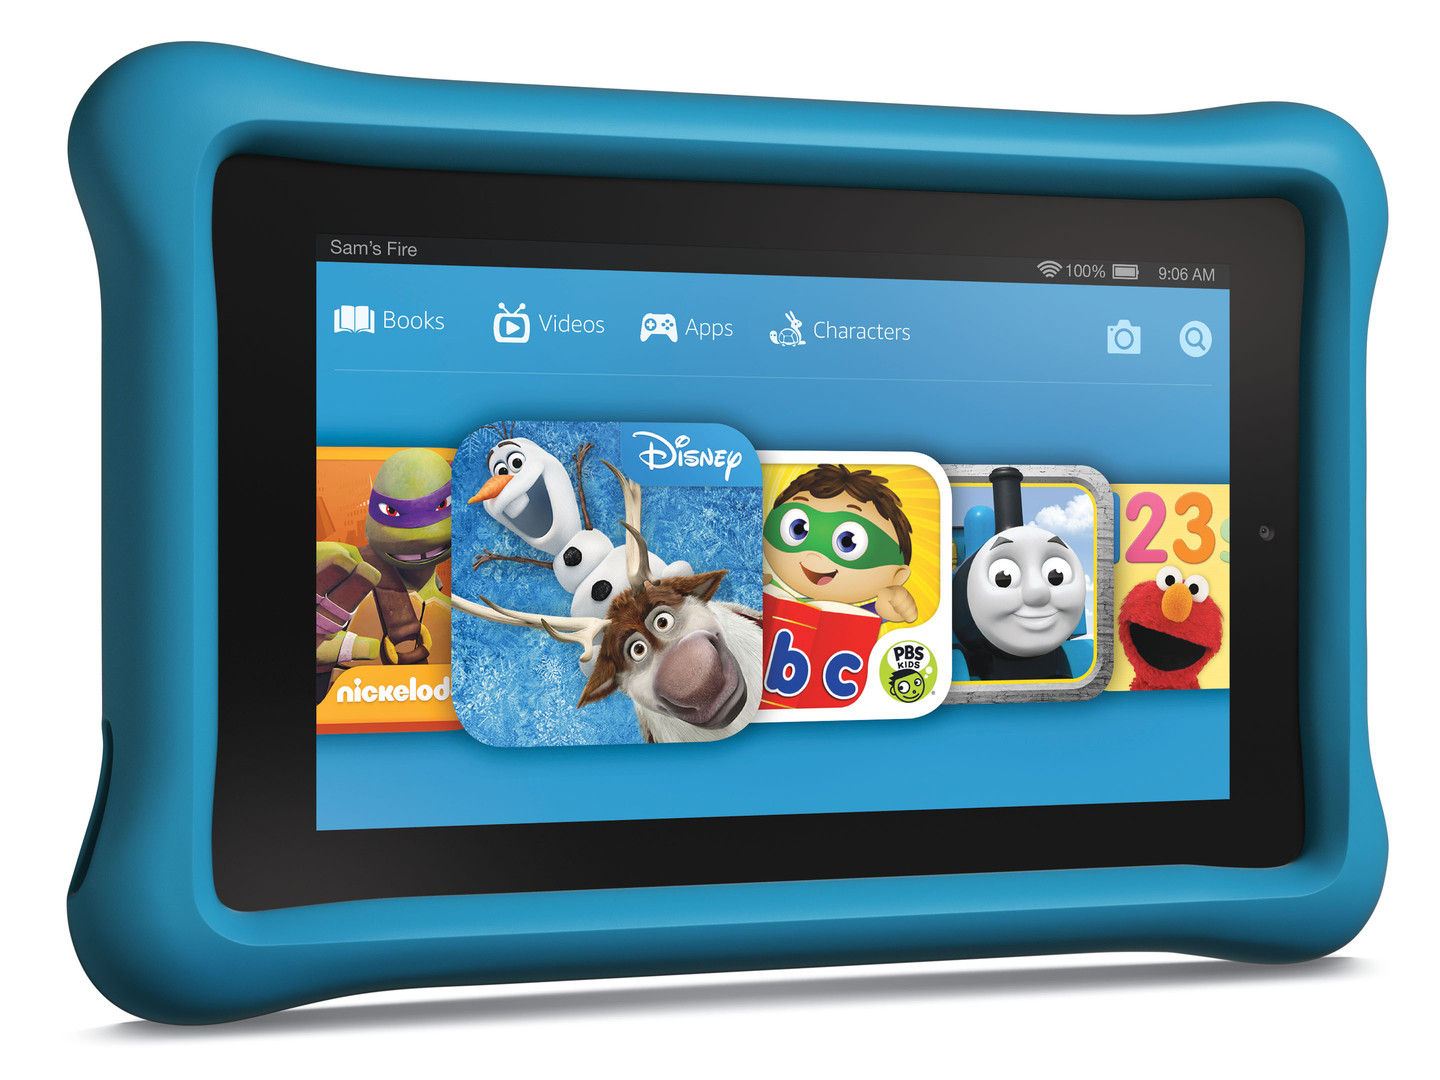 c0f8ea00ae50bd Amazon Fire Kids Edition (Late 2015) Tablet Review - NotebookCheck ...